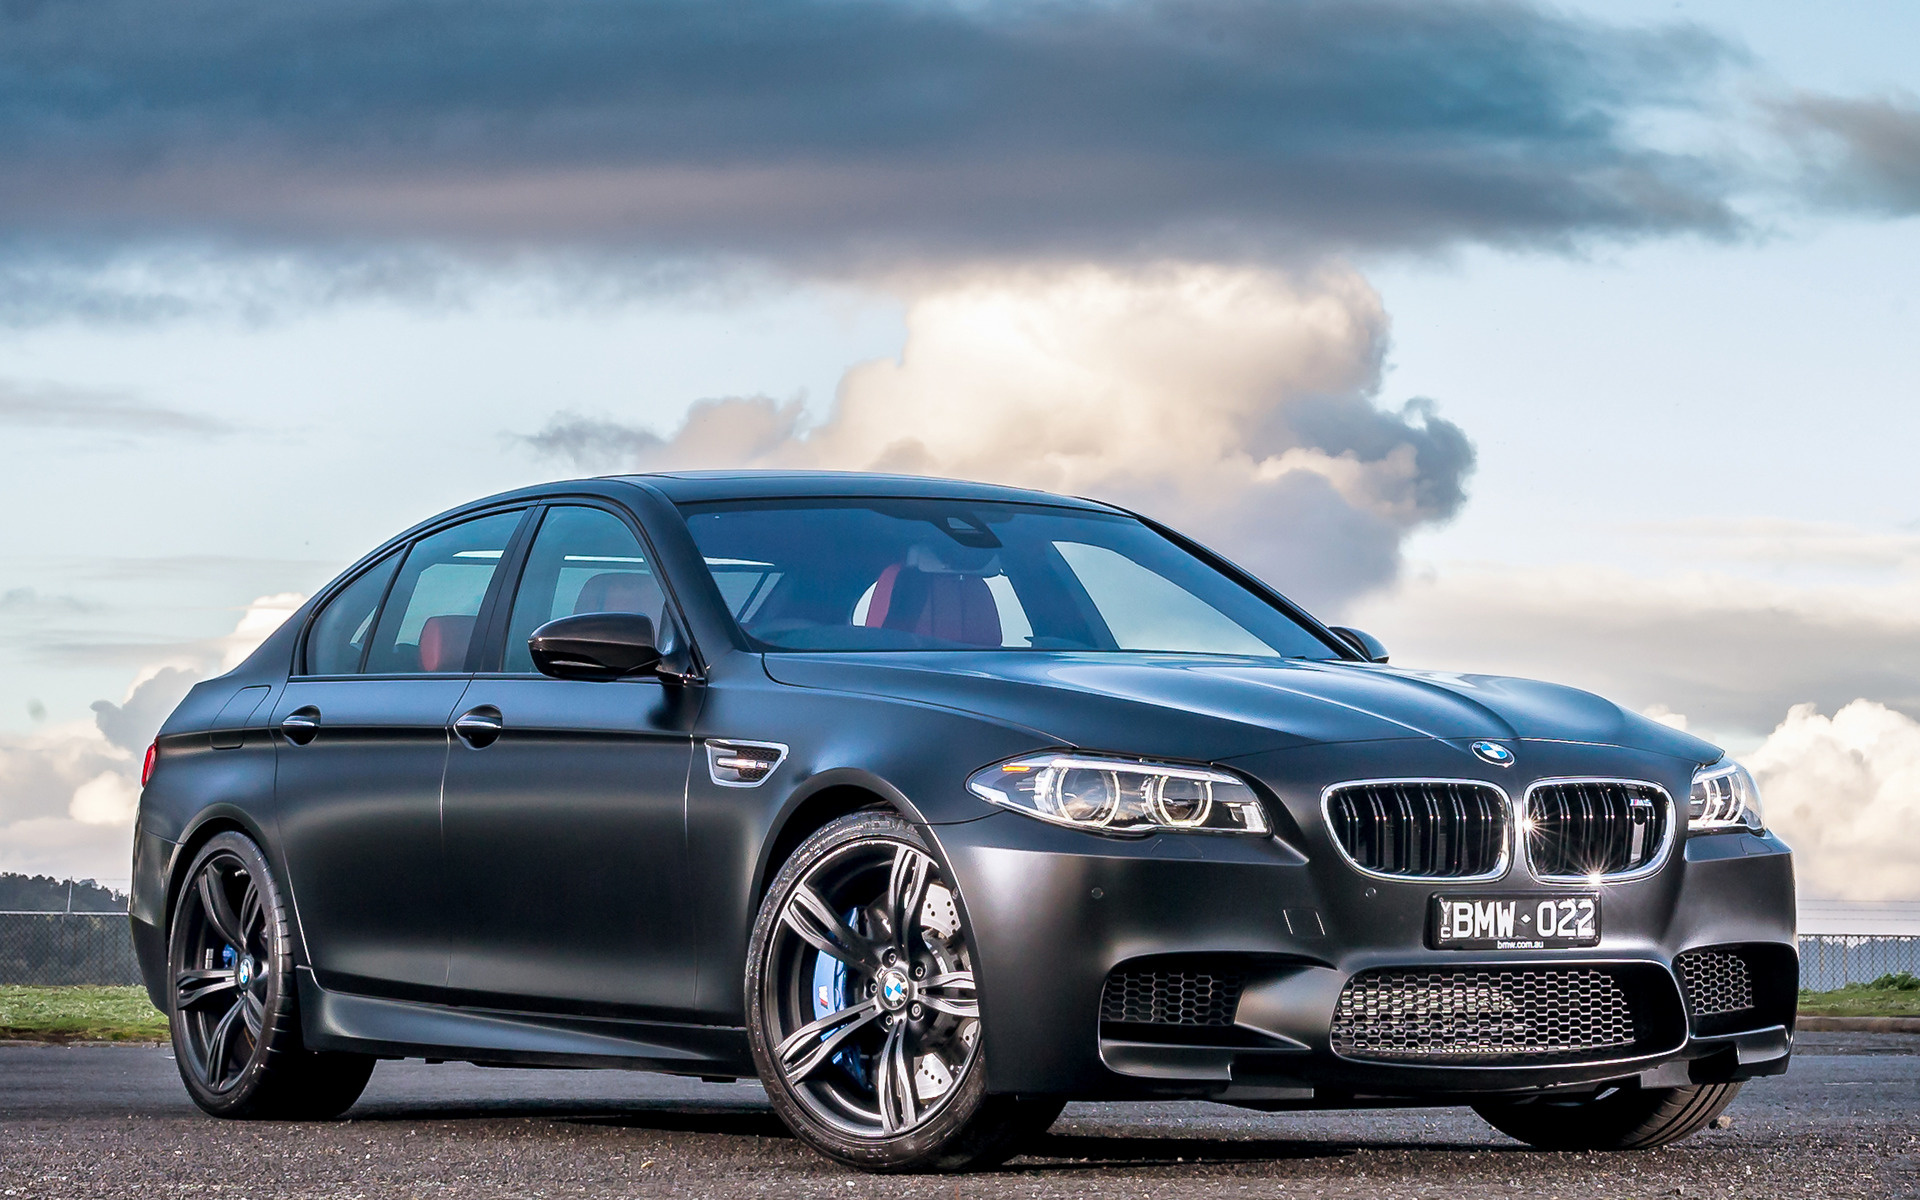 BMW M5 Nighthawk 2015 AU Wallpapers and HD Images 1920x1200